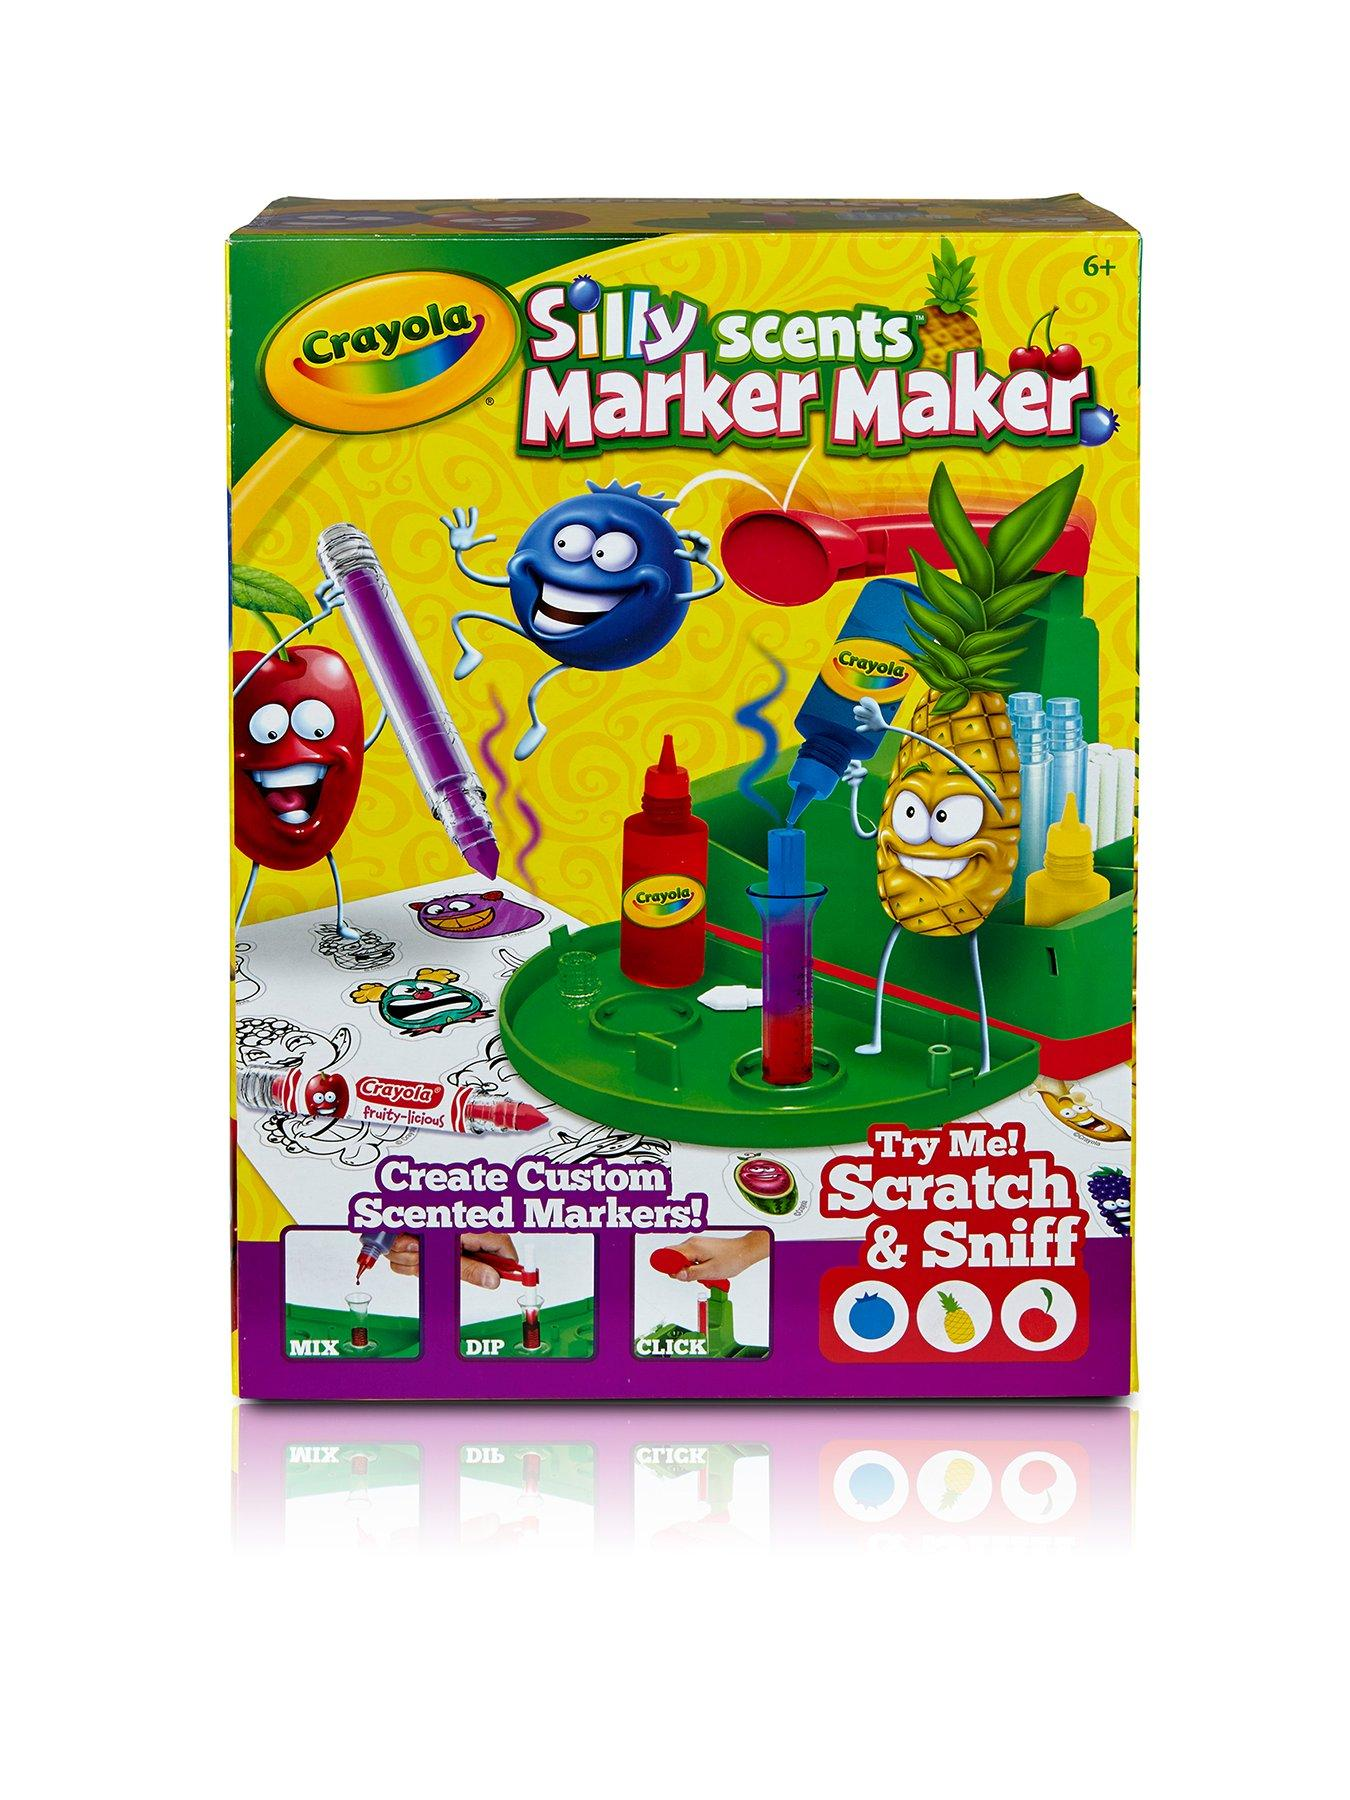 Compare prices for Crayola Silly Scents Marker Maker